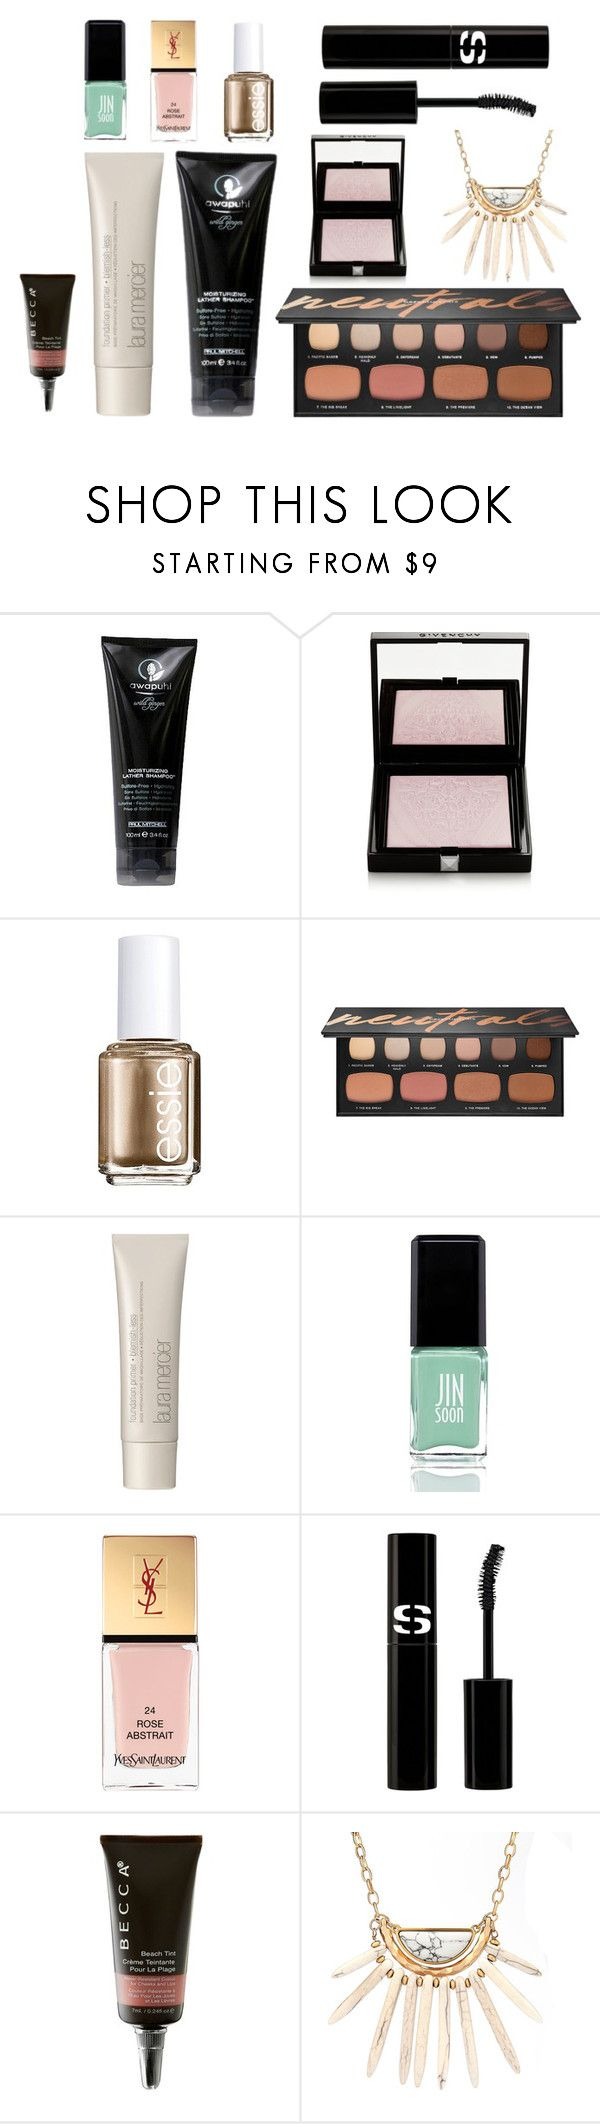 """april beauty favorites"" by curatedfarm ❤ liked on Polyvore featuring beauty, Paul Mitchell, Givenchy, Essie, Bare Escentuals, Laura Mercier, JINsoon, Yves Saint Laurent, Sisley and Becca"